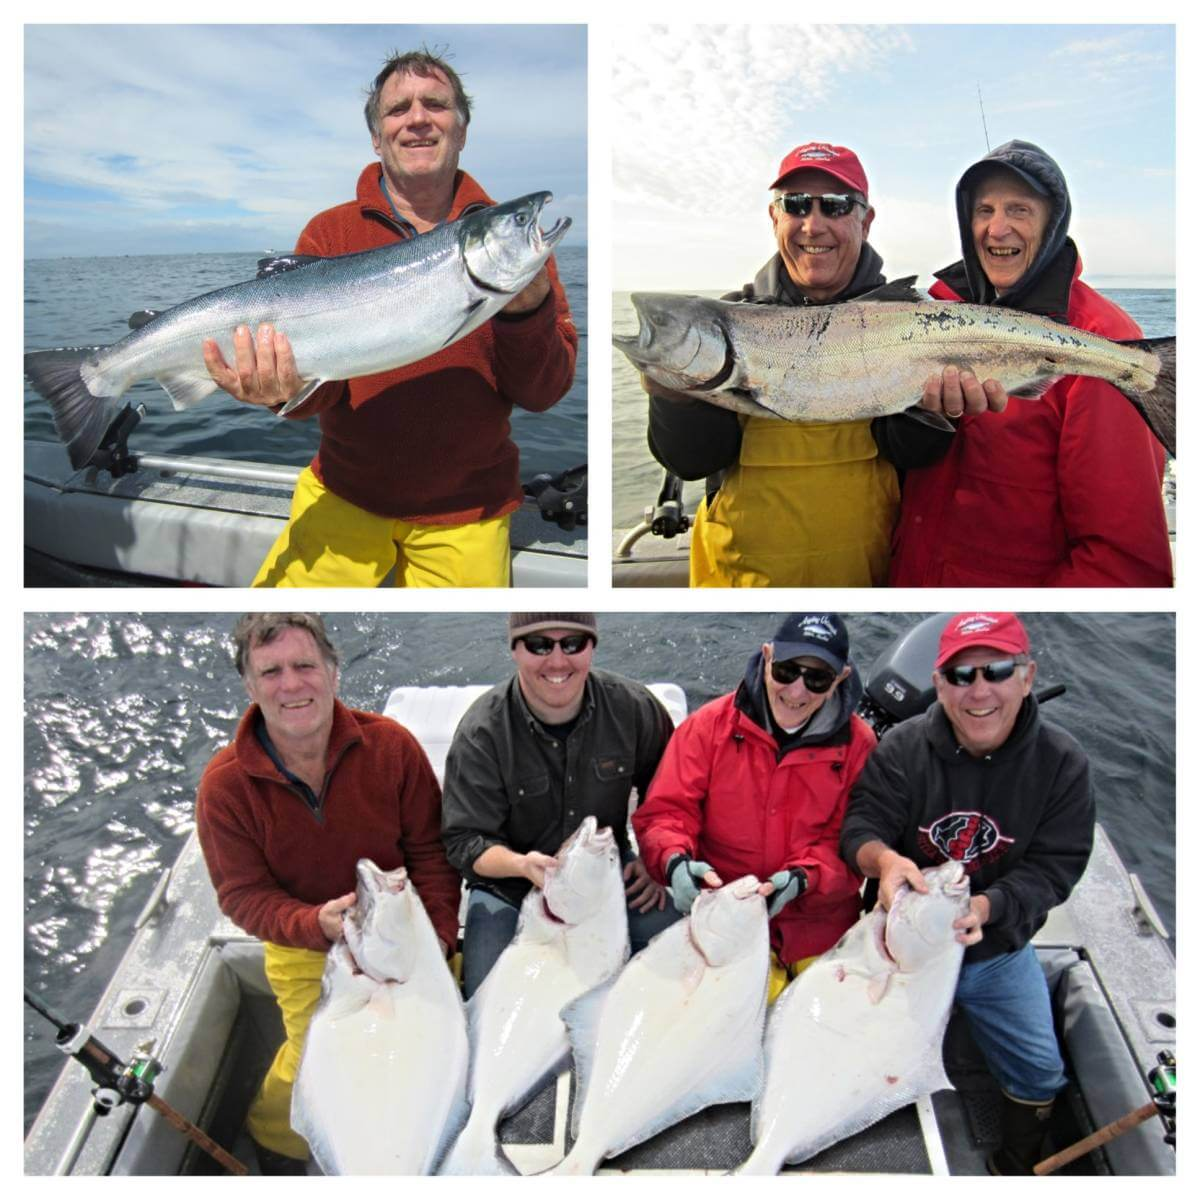 Sitka fishing report 7 31 erwert party angling unlimited for Sitka fishing report